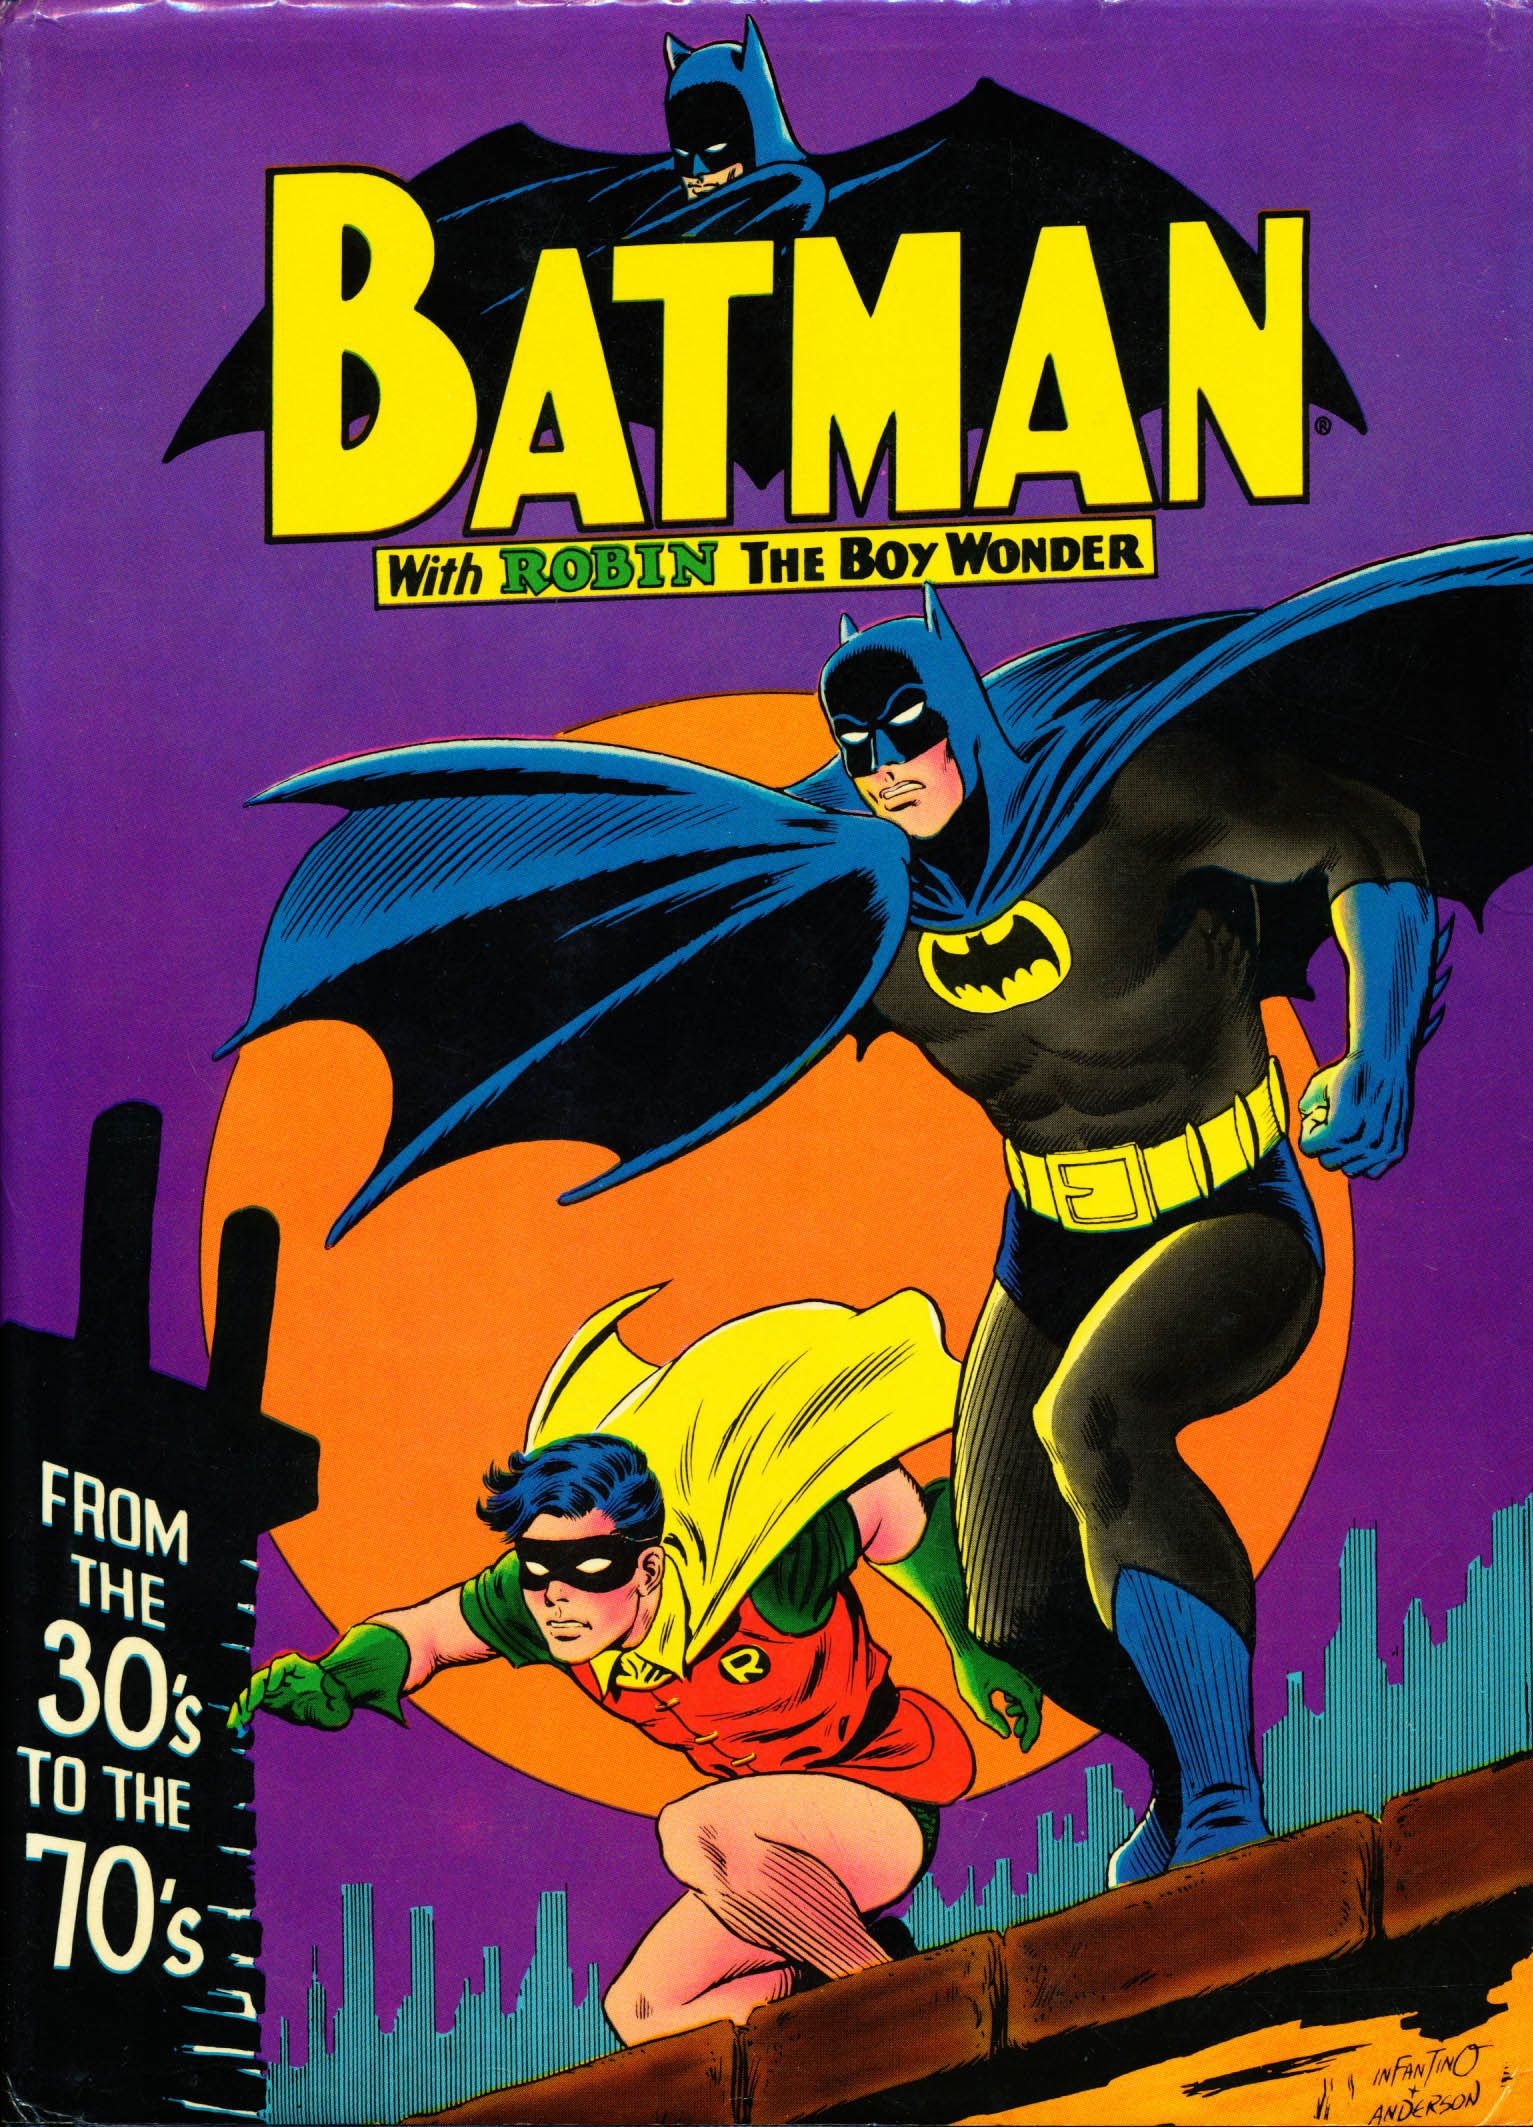 the first batman comic book Jul 2011  The Bleeding Cool website has published some scans of original Batman comic  book art proofs by original Batman artist/creator Bob Kane.